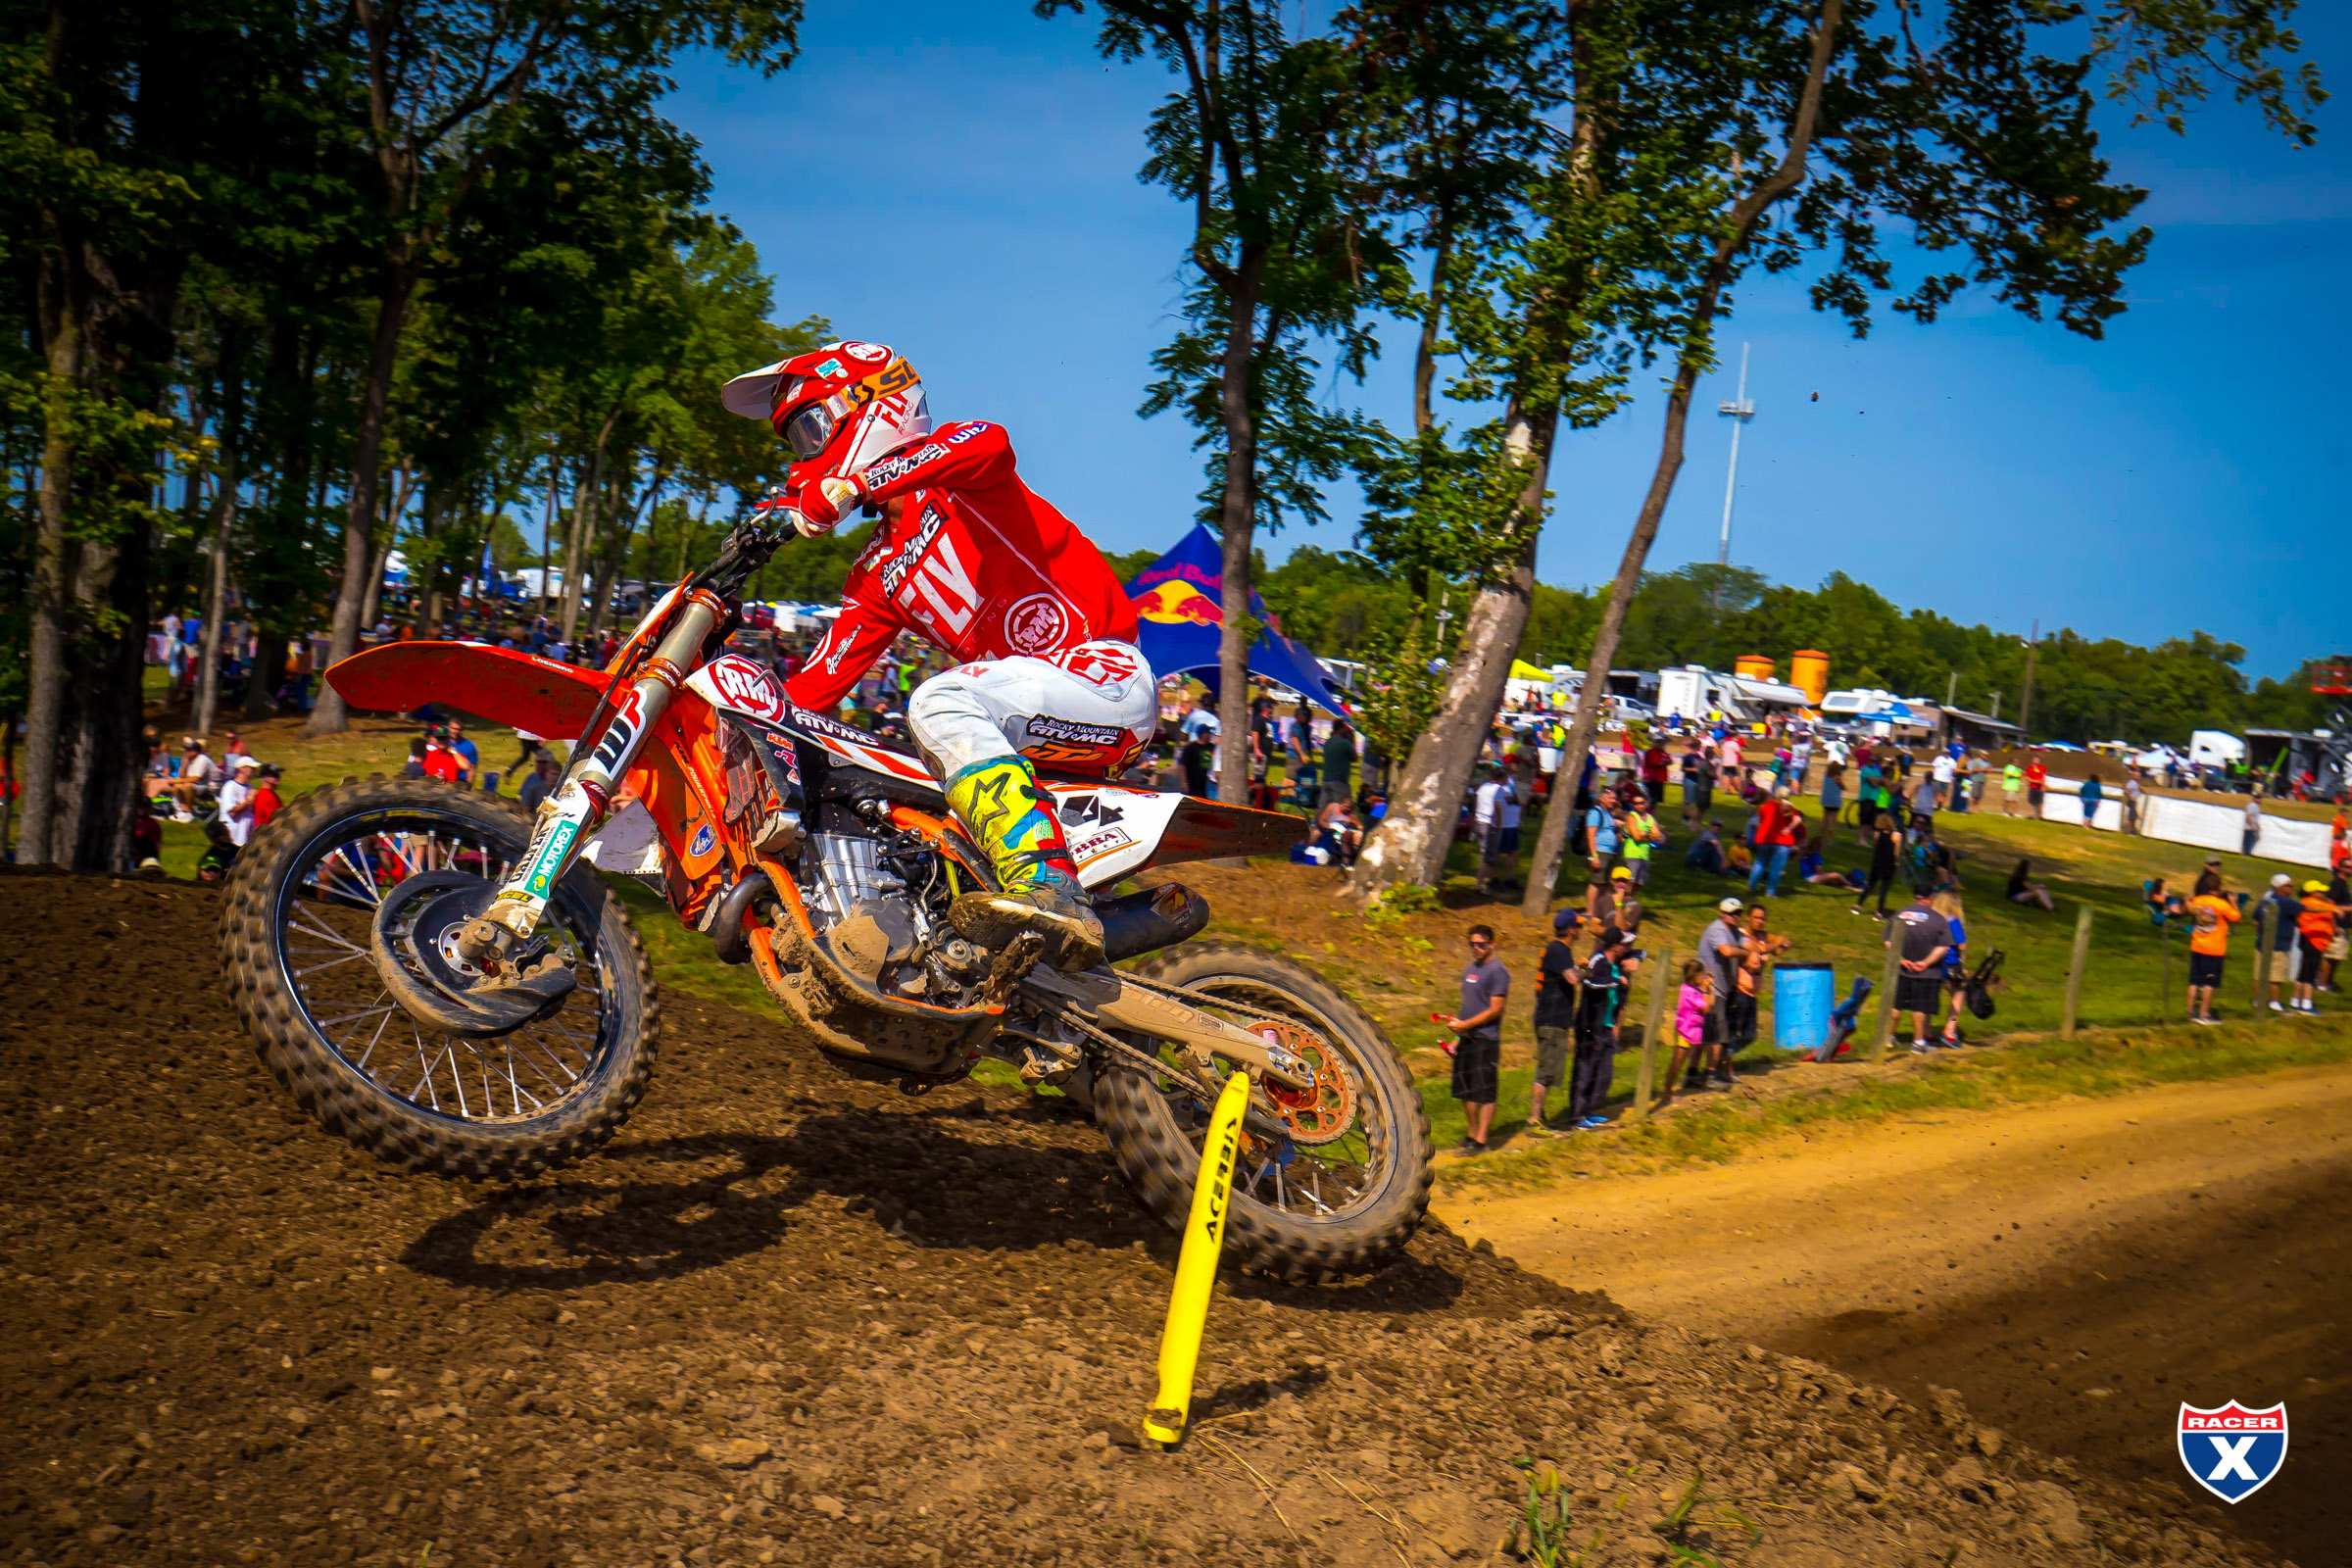 Baggett_MX17_Ironman_RS_2175